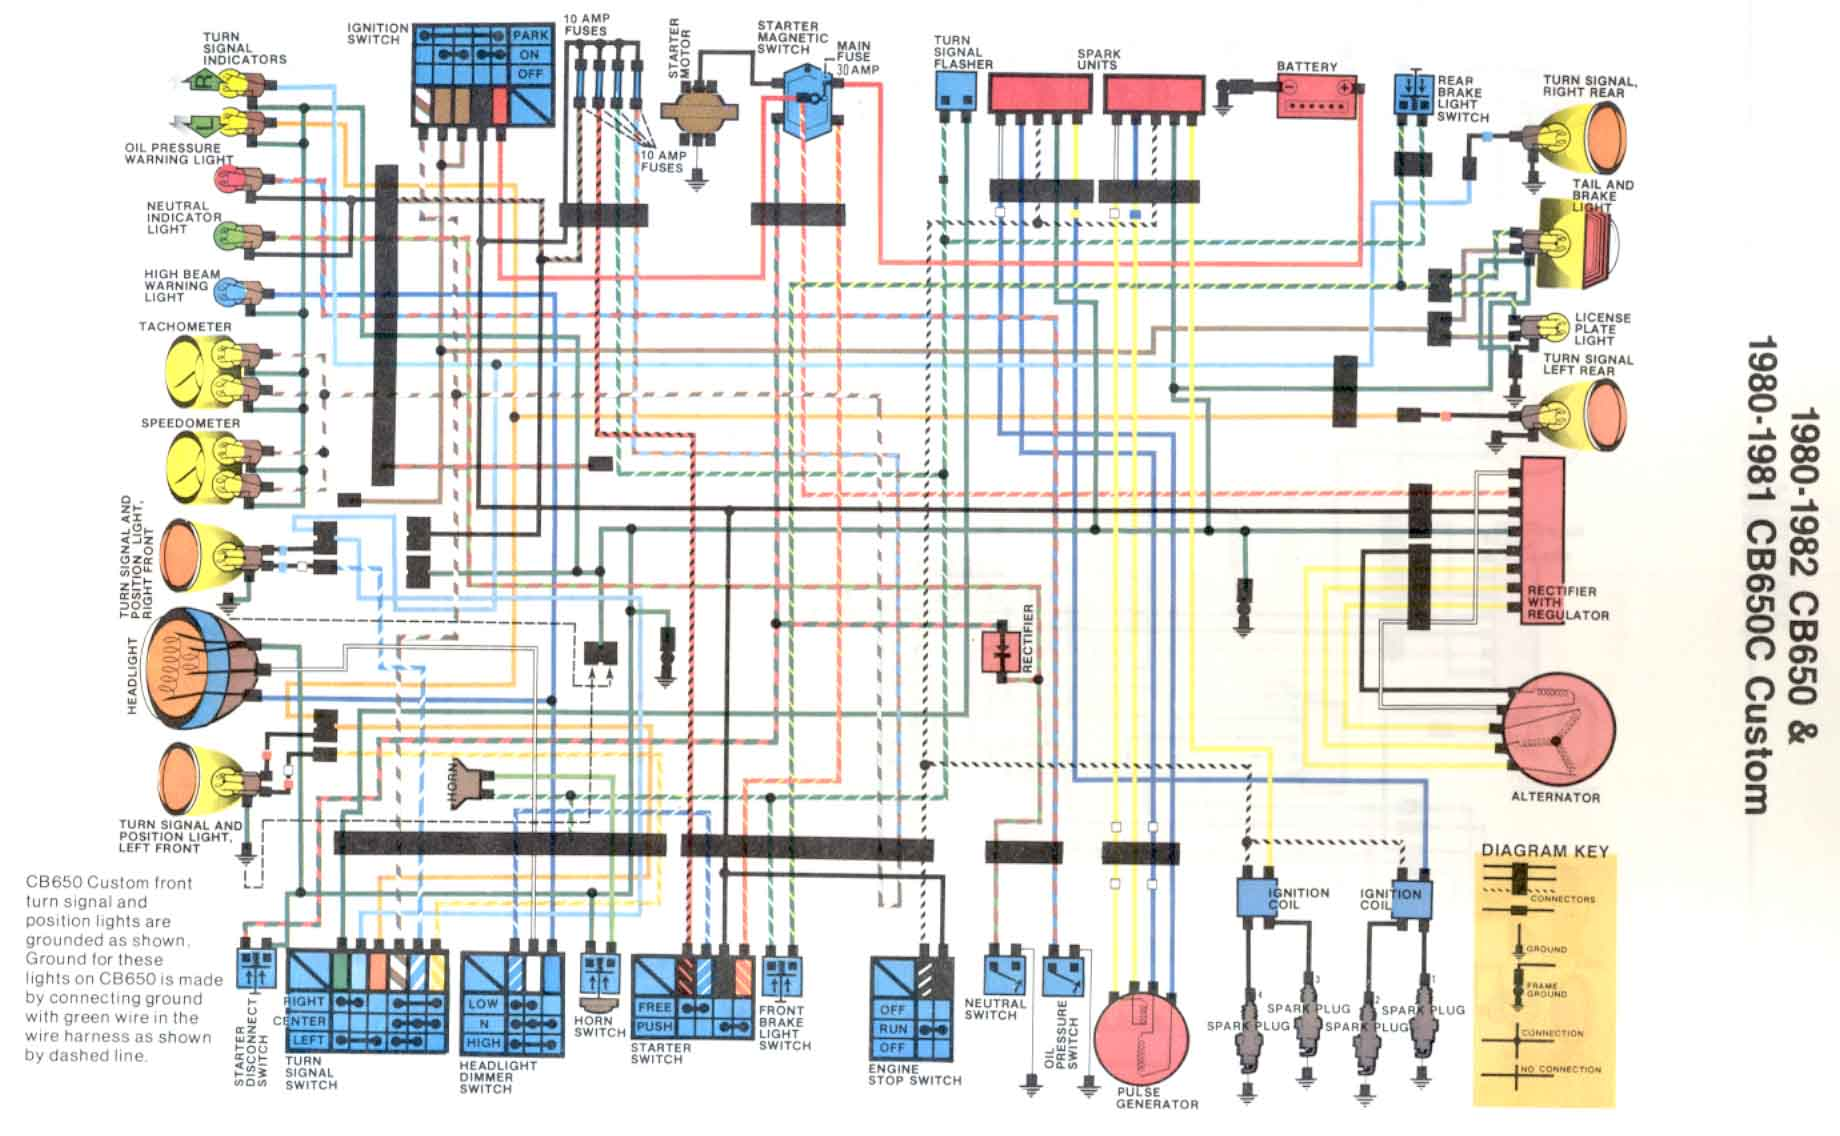 honda cbr 600 f3 wiring diagram all wiring diagram Honda CBR 600 Oil Cooler